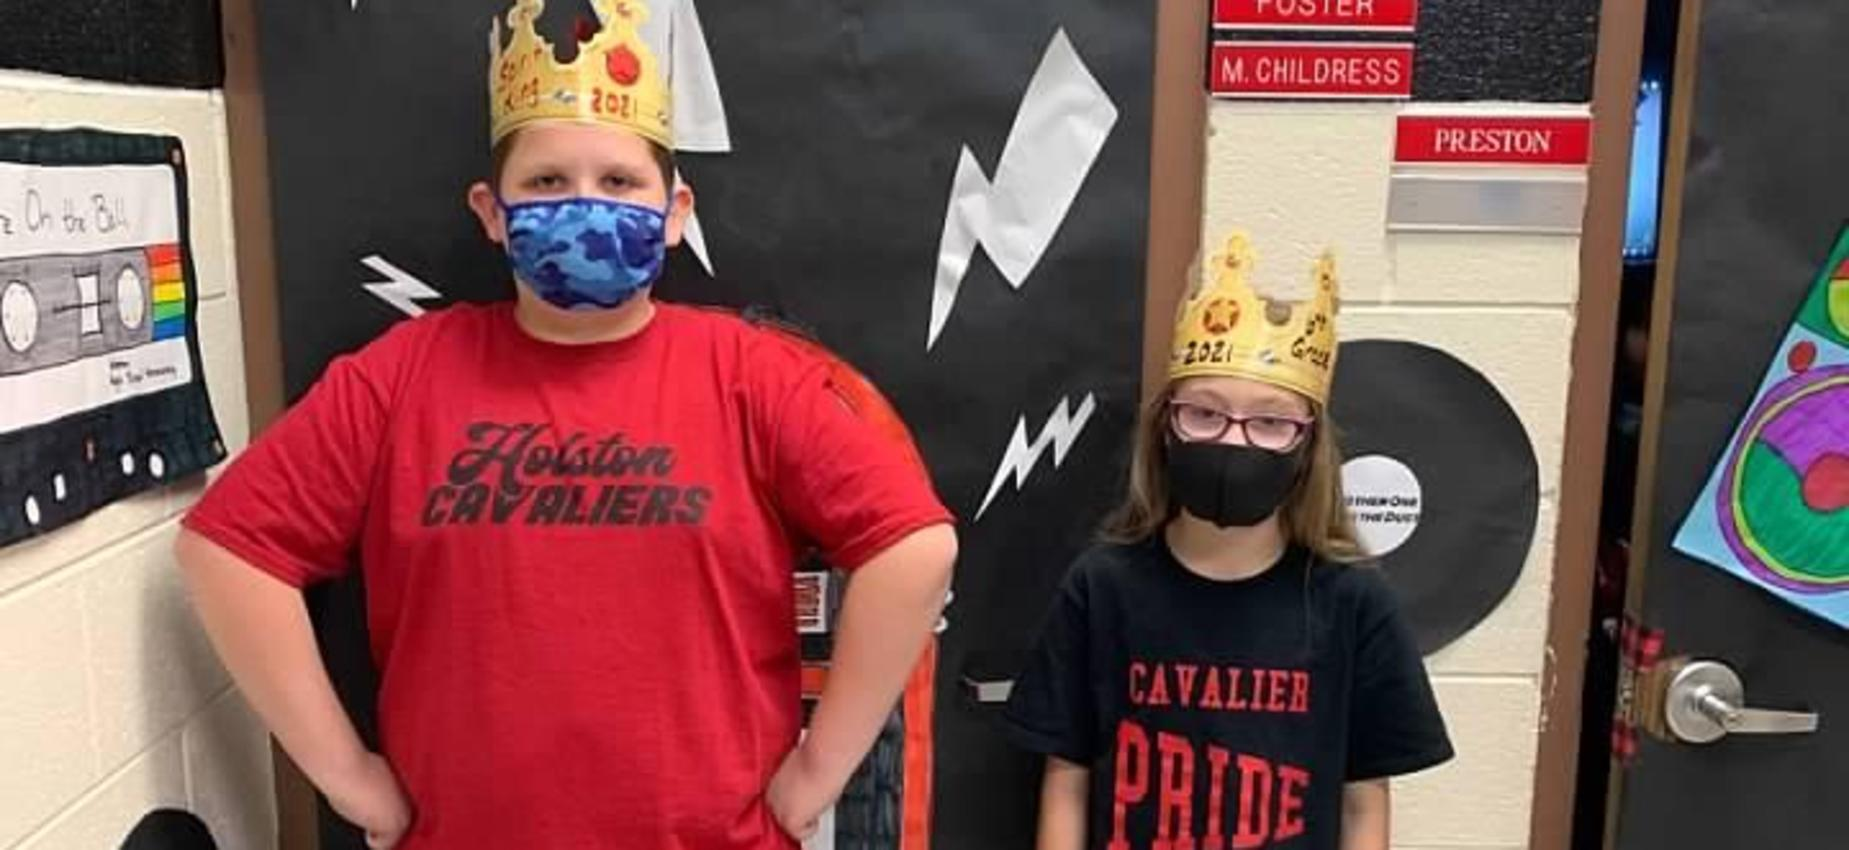 Two students wear crowns in front of decorated doors.